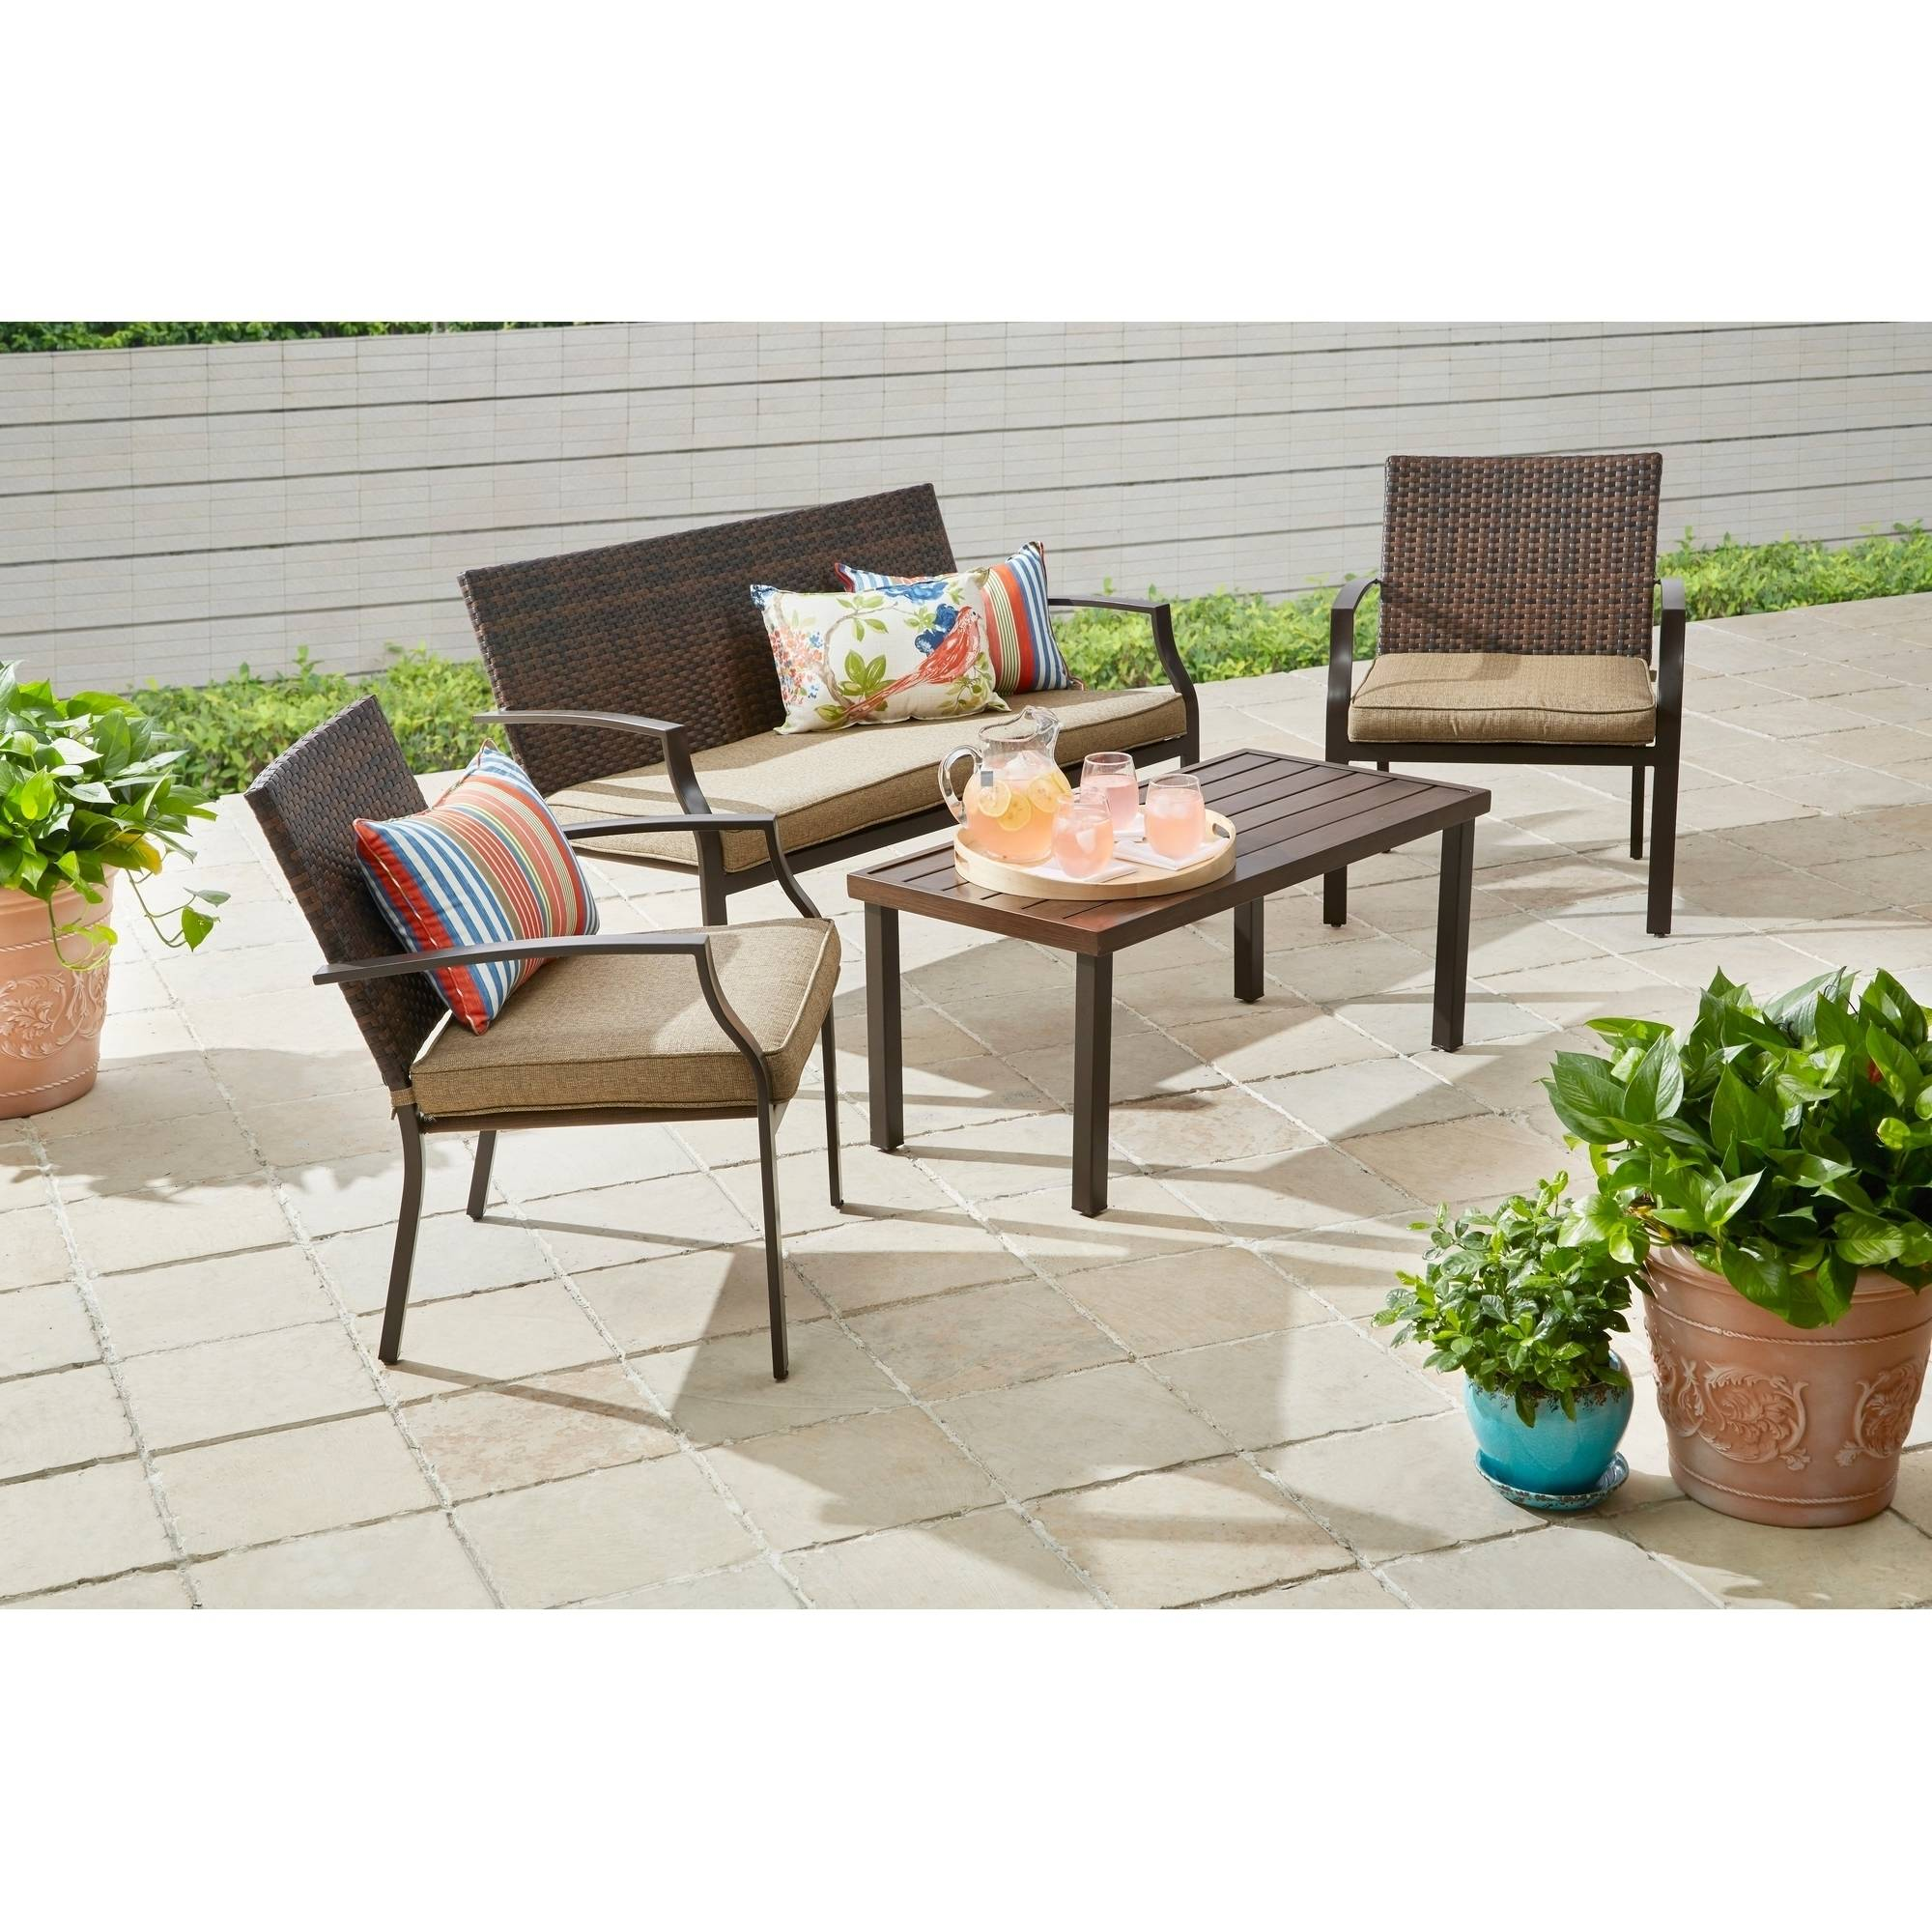 Better Homes & Gardens Boxford 4 Piece Wicker Stacking Conversation Set with Fabric Cover